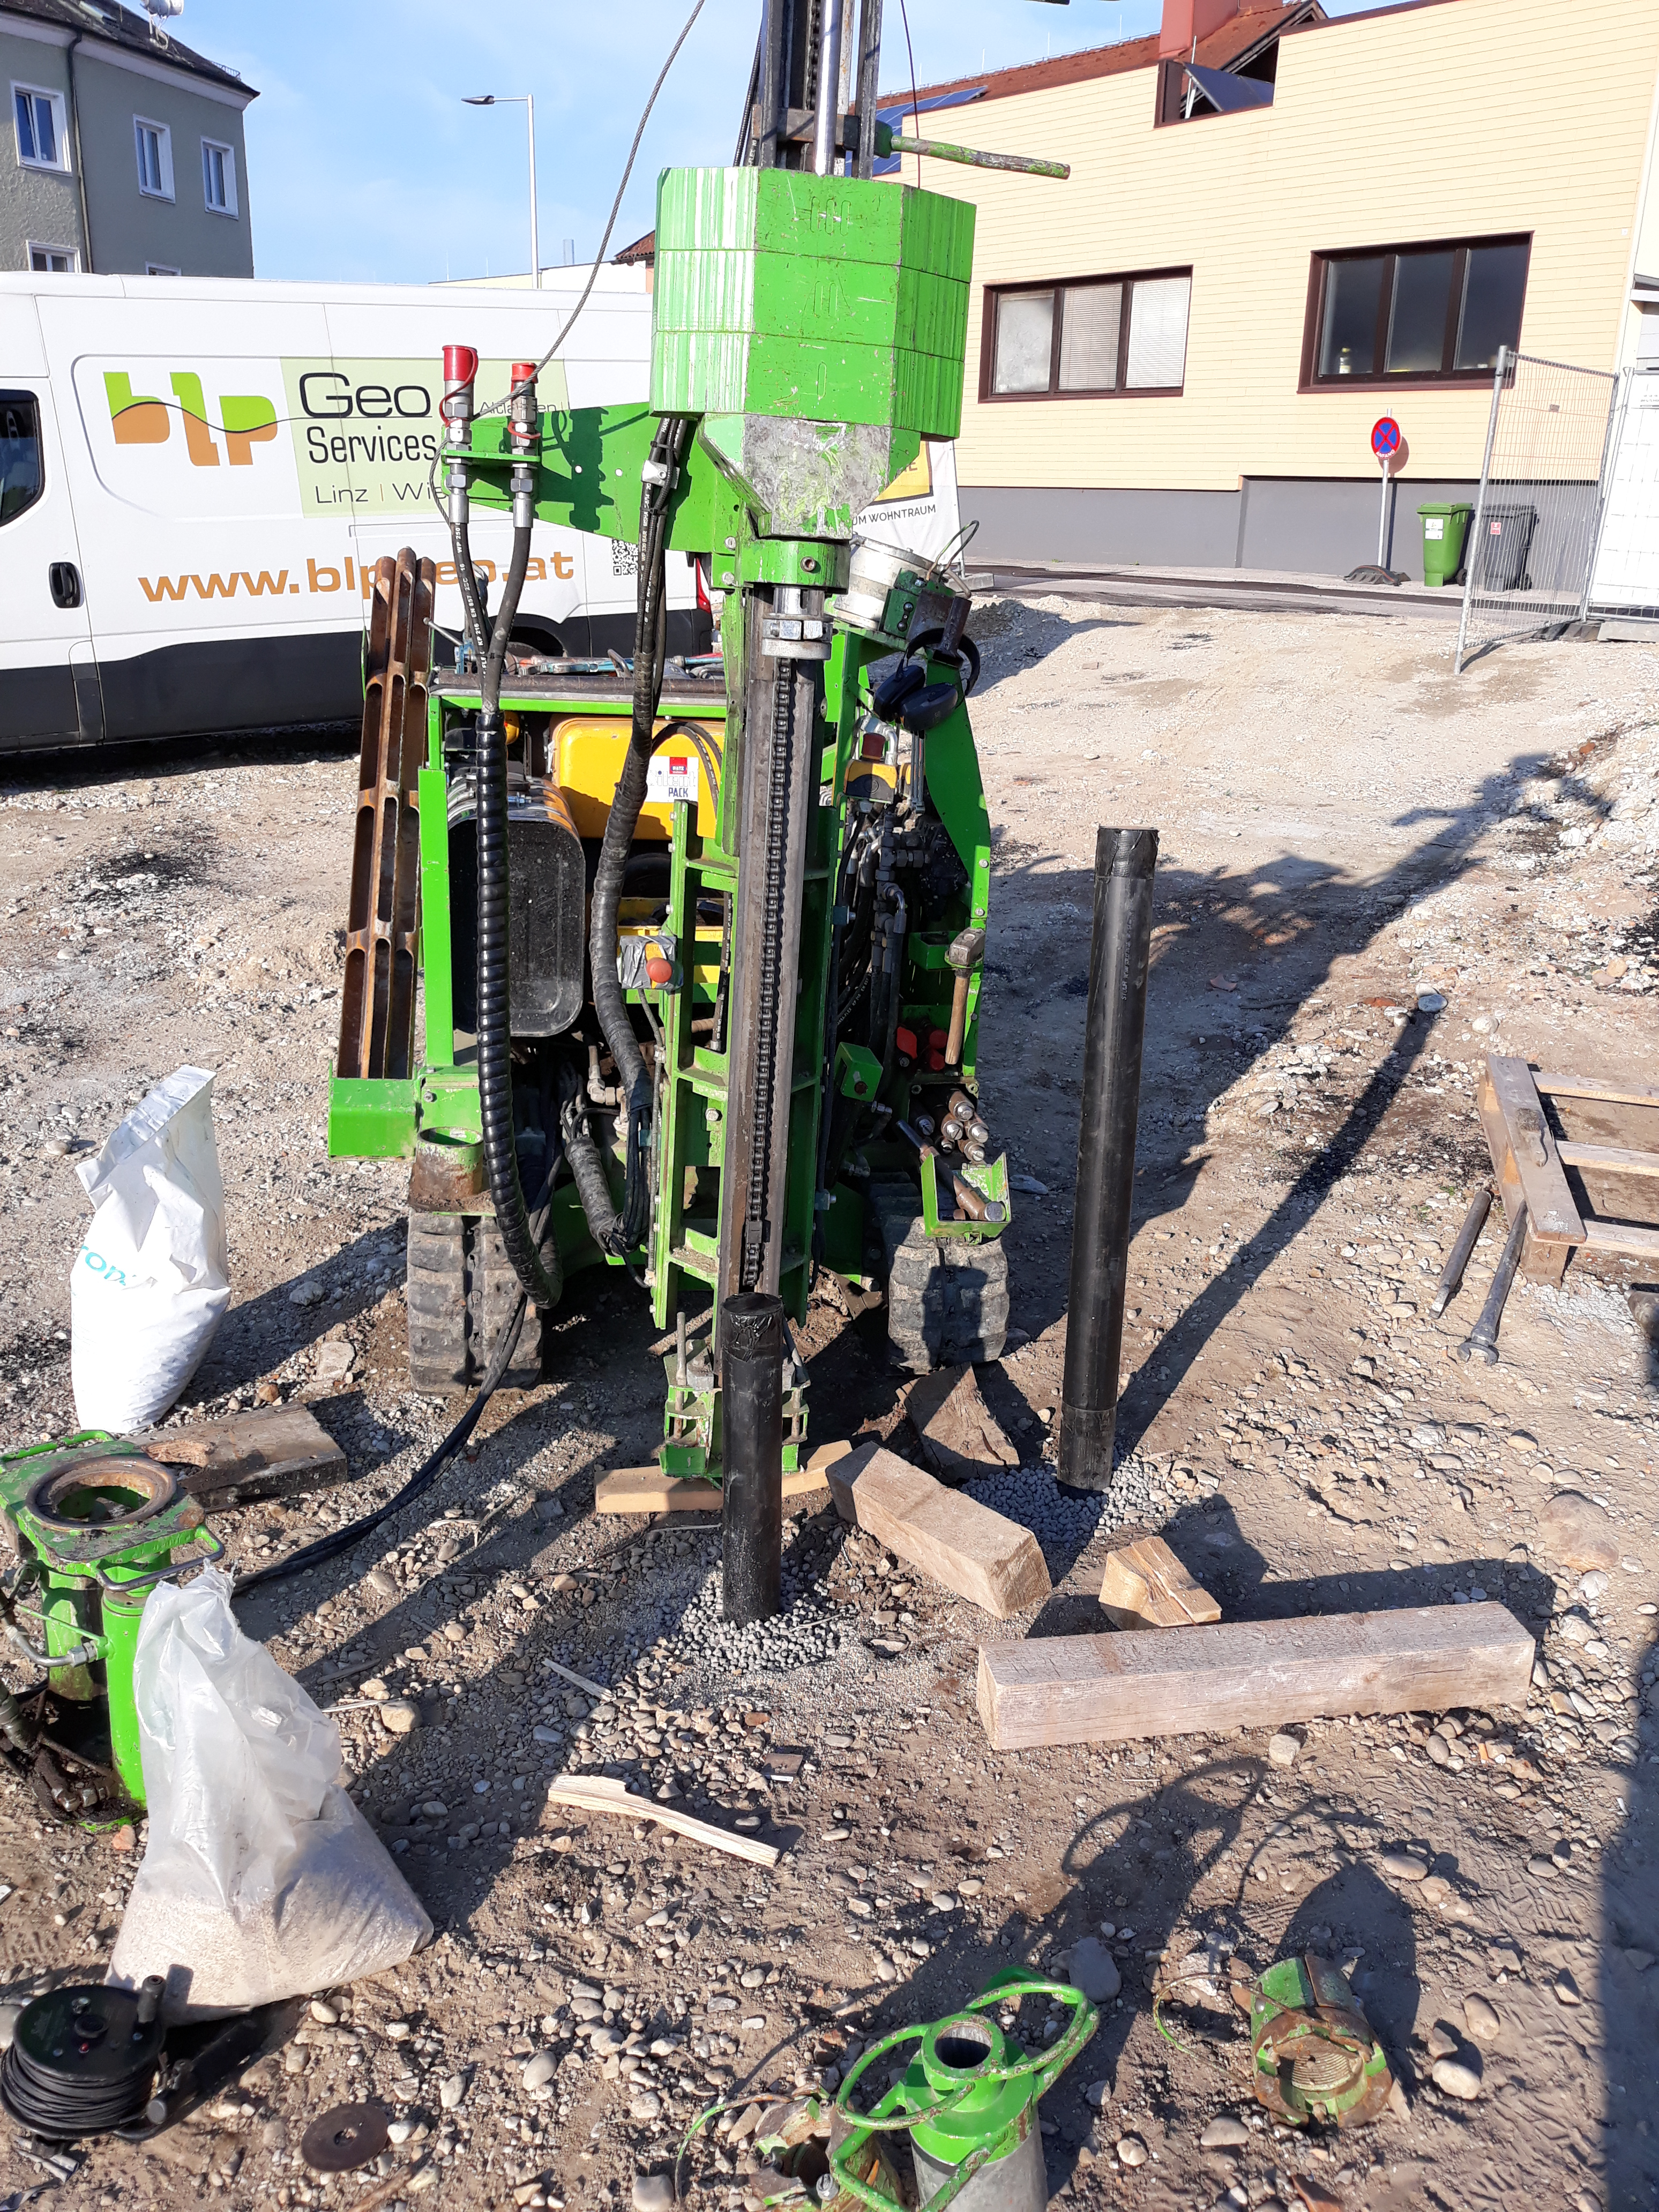 blp GeoServices Online monitoring of excavated material